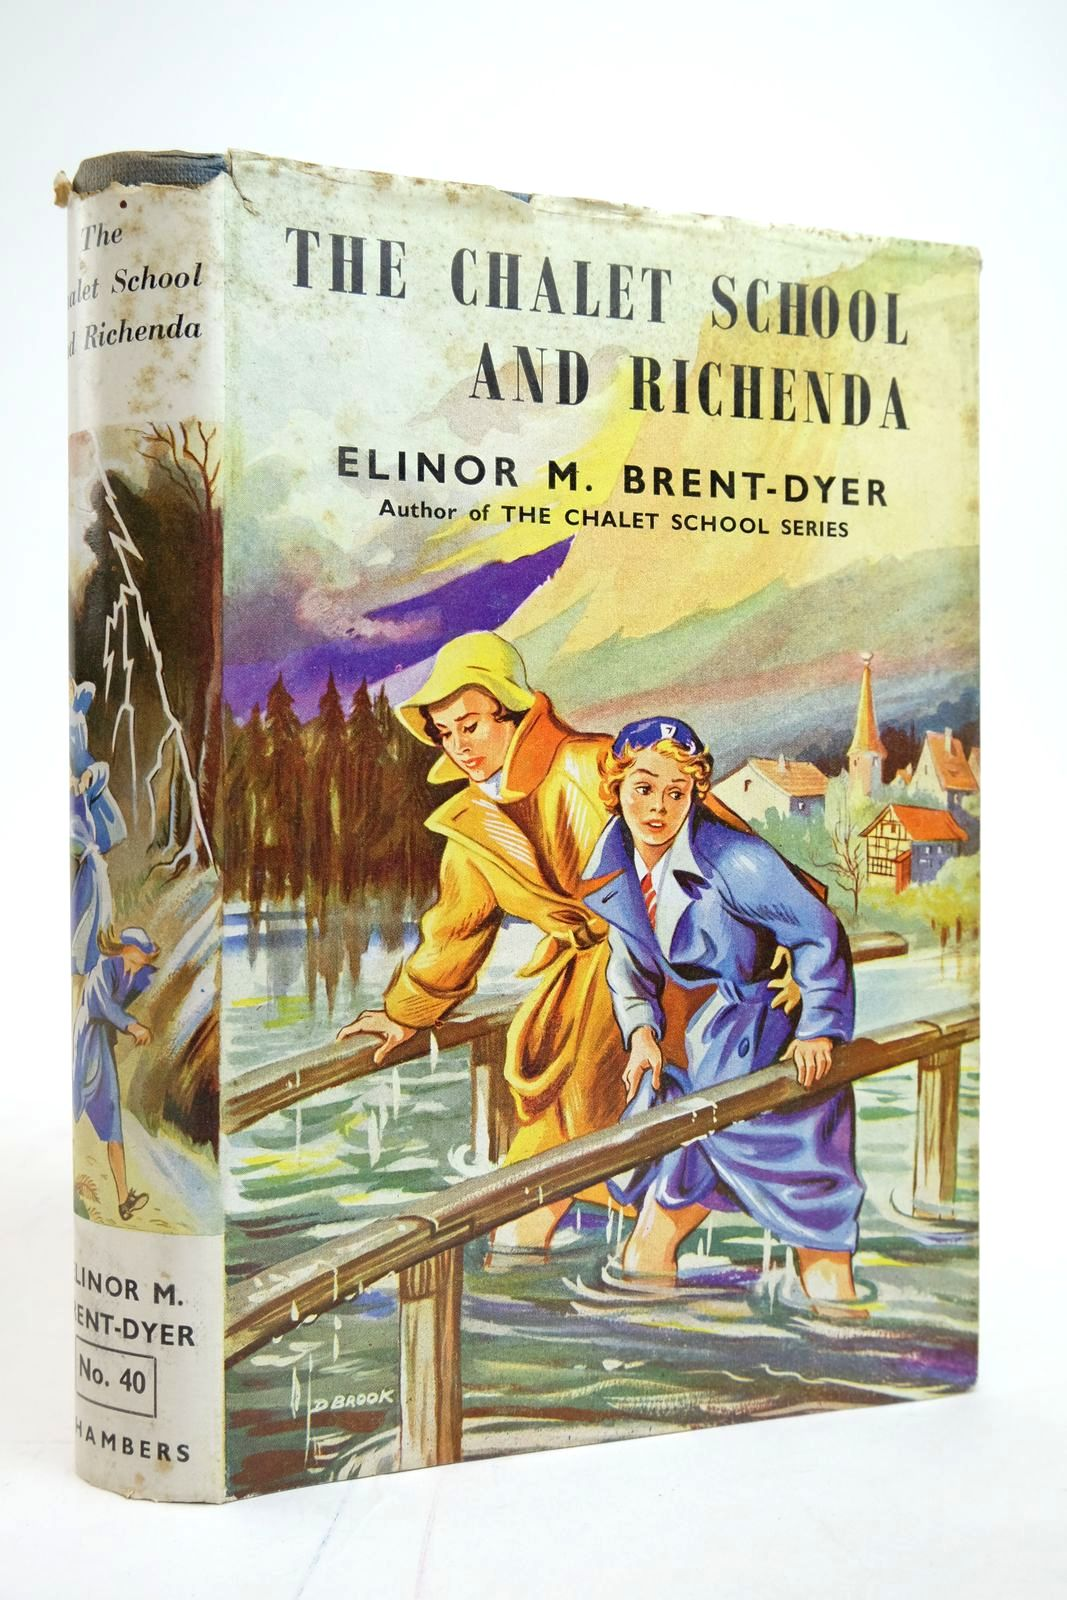 Photo of THE CHALET SCHOOL AND RICHENDA written by Brent-Dyer, Elinor M. illustrated by Brook, D. published by W. & R. Chambers Limited (STOCK CODE: 2135304)  for sale by Stella & Rose's Books